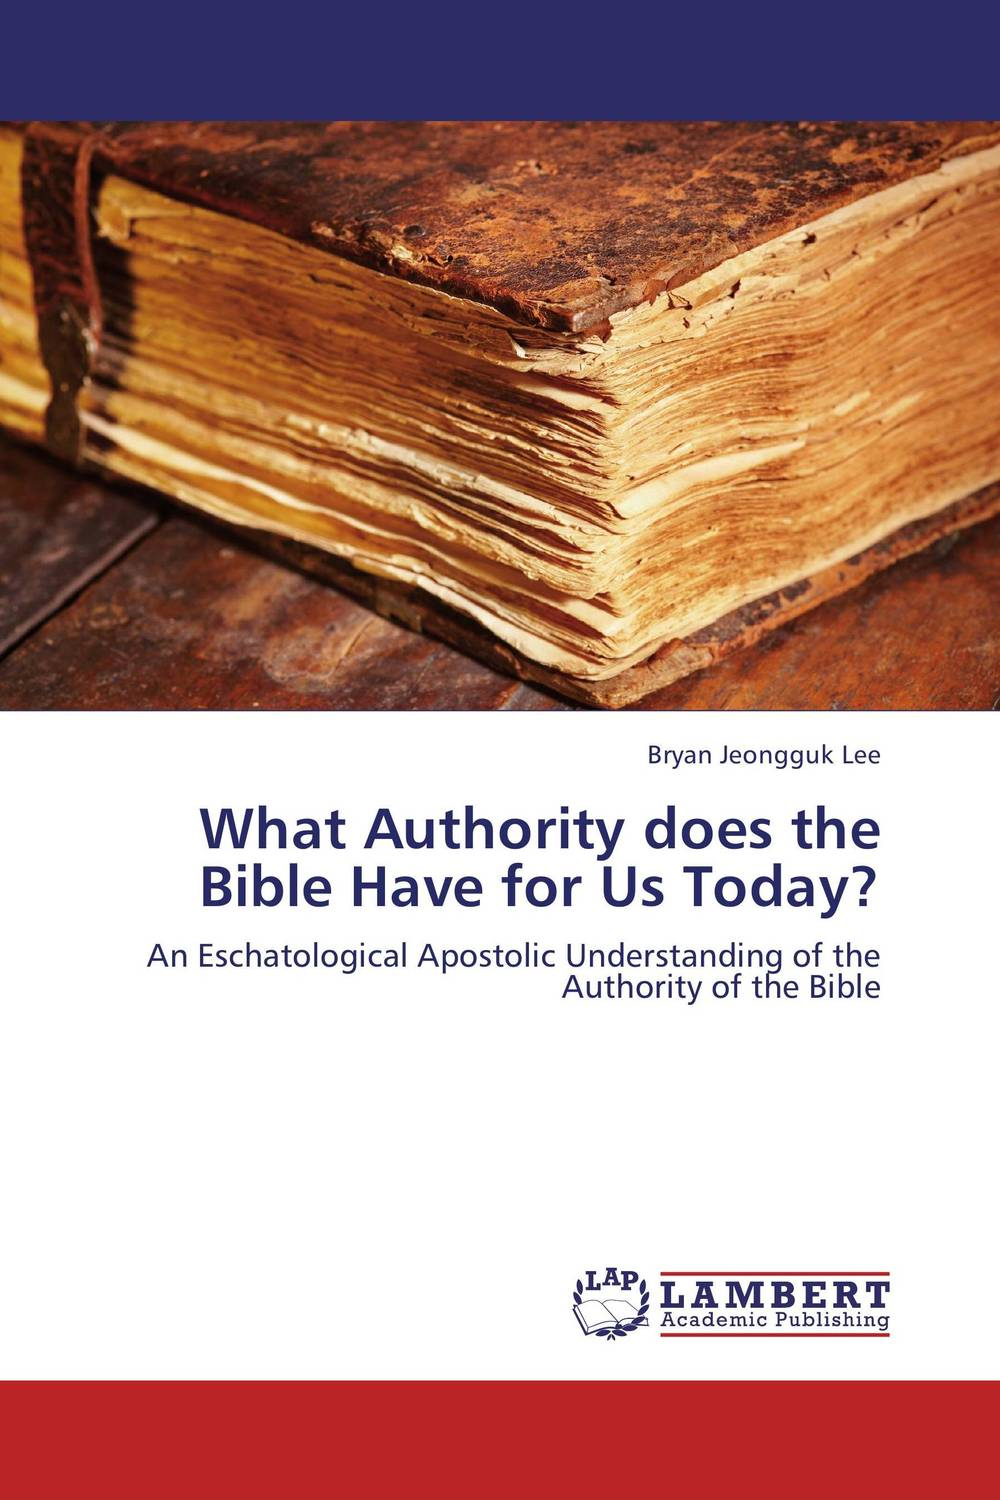 What Authority does the Bible Have for Us Today?